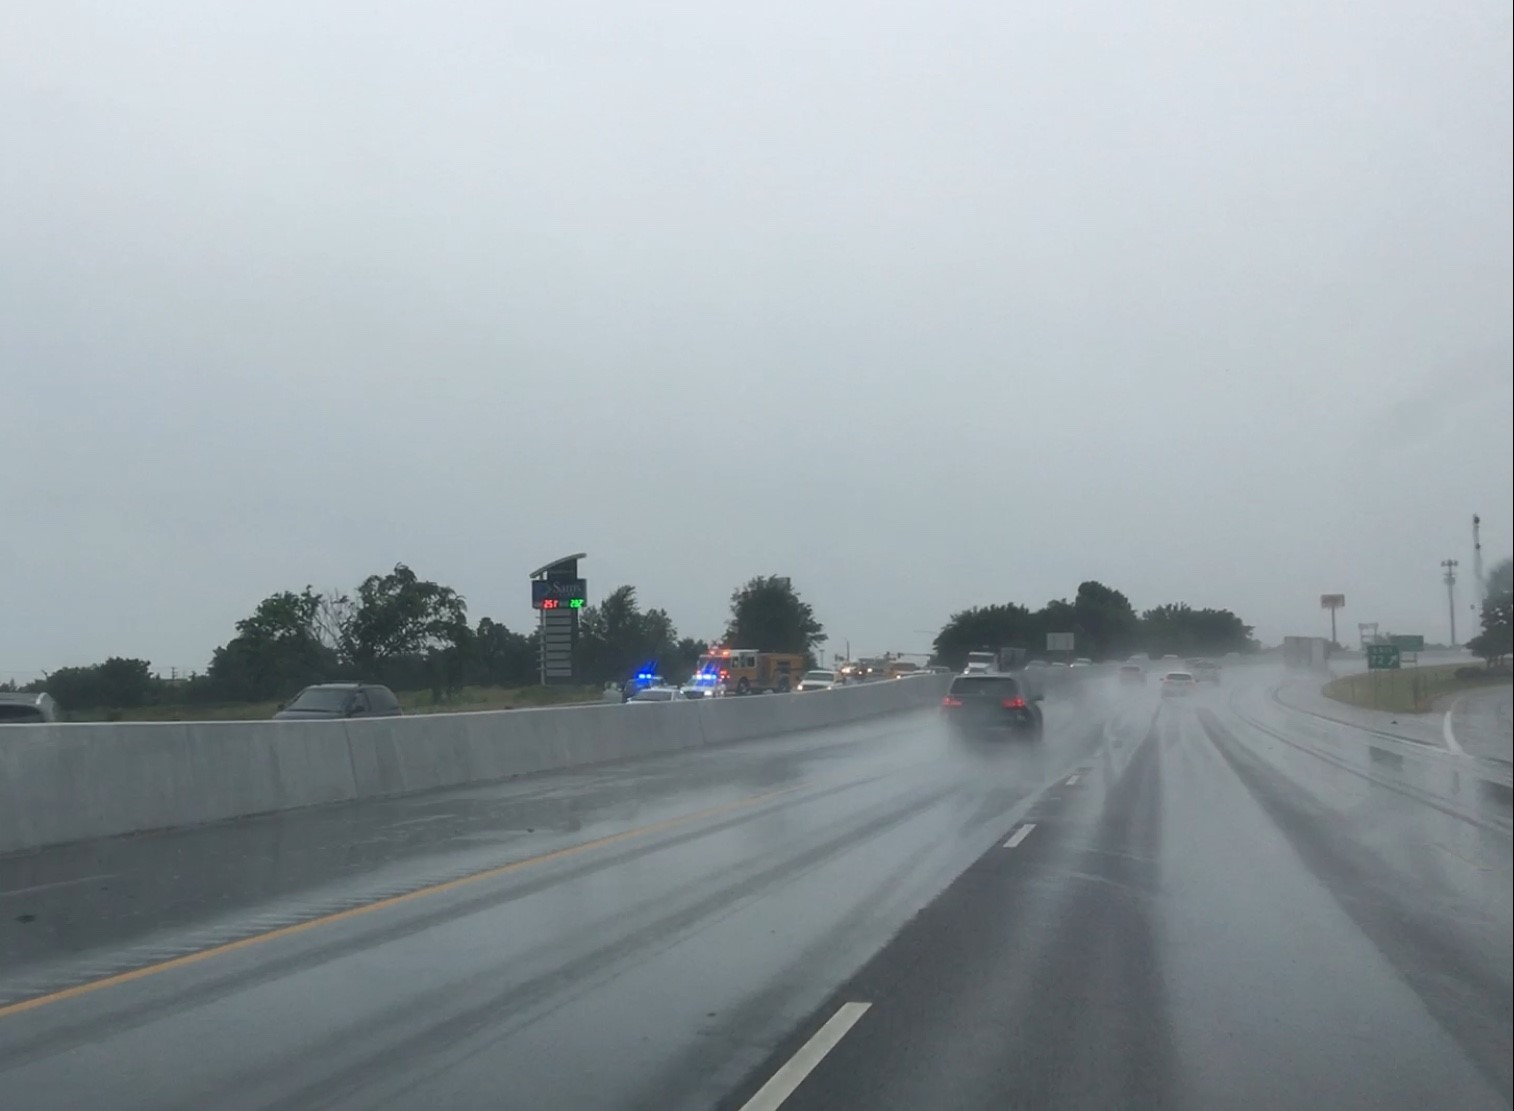 A multi-vehicle accident just south of U.S. 412 on I-49 backed up southbound traffic.